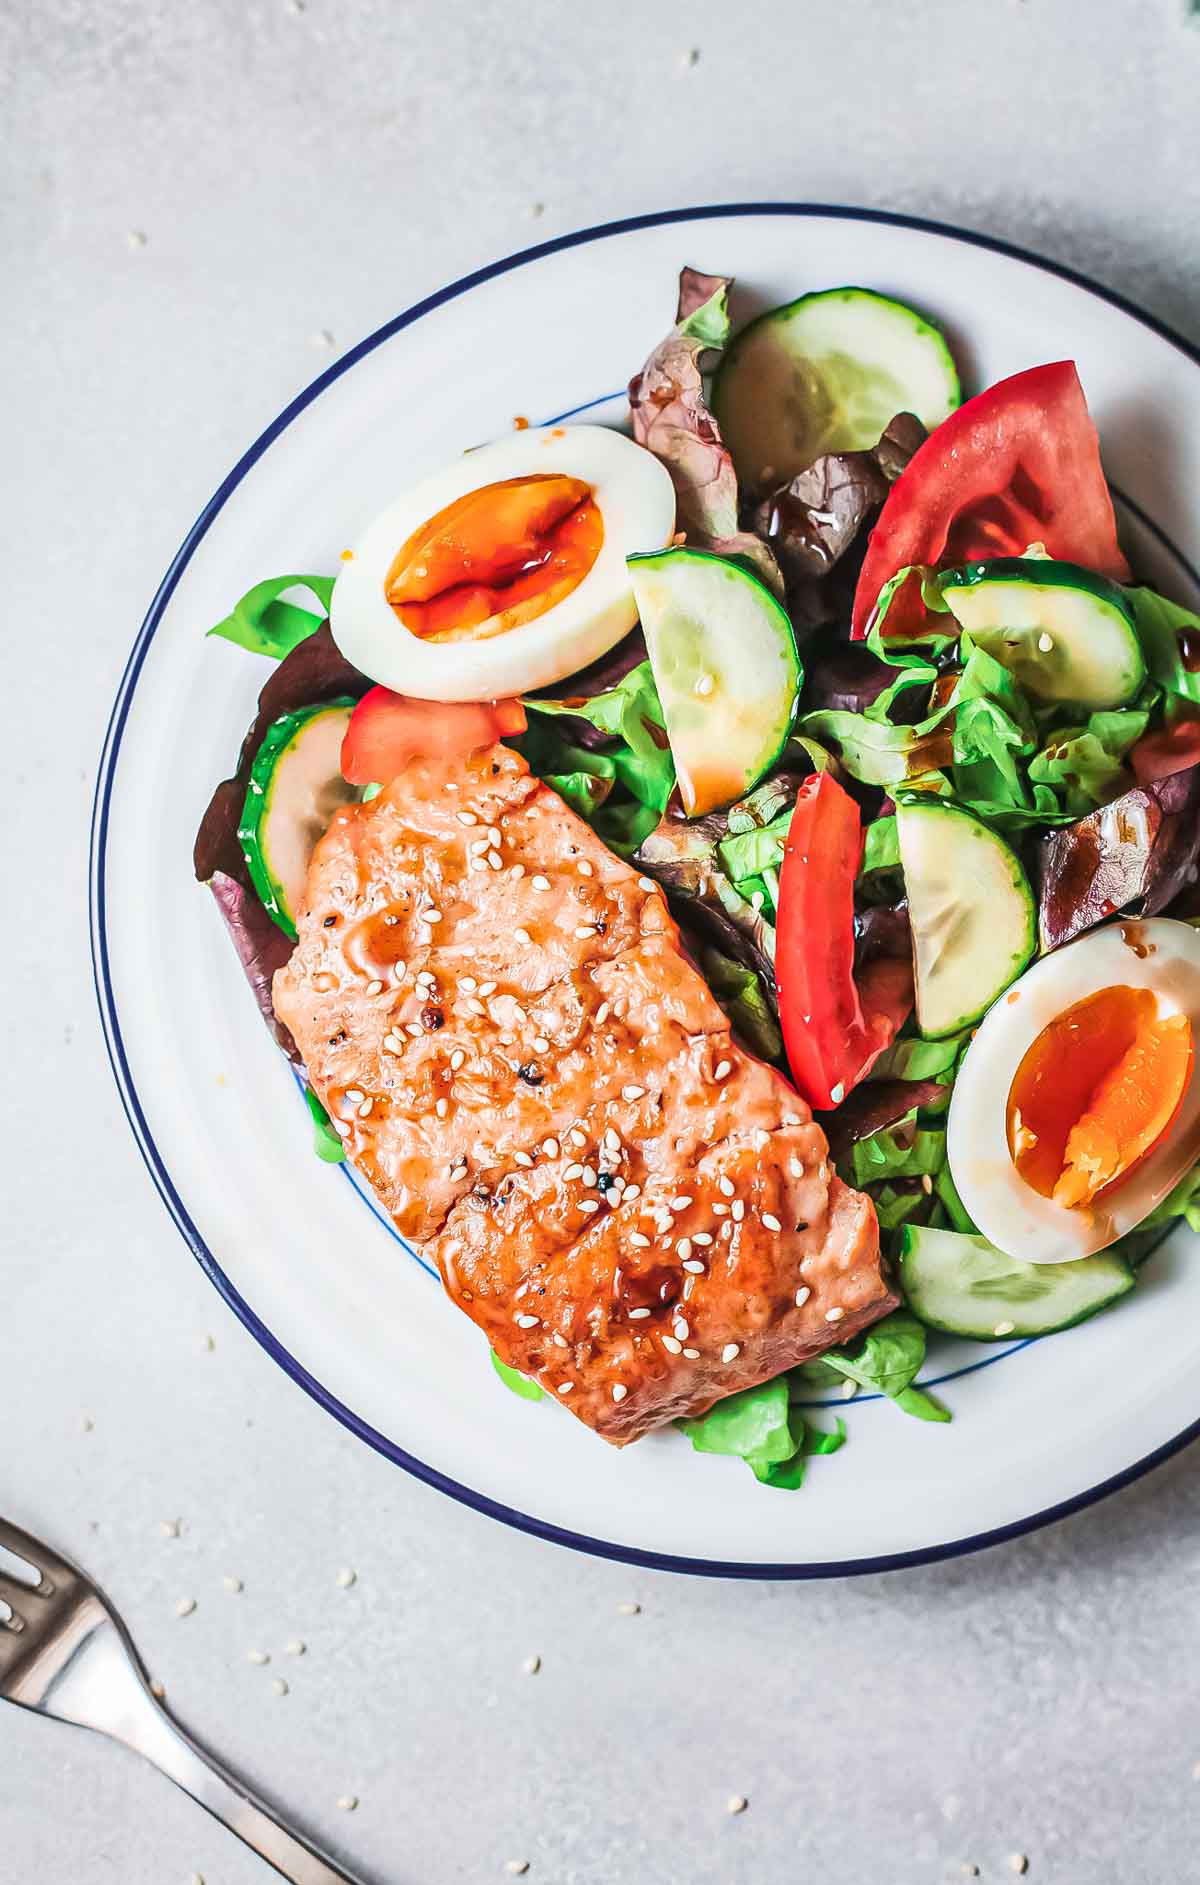 top down view of the completed teriyaki salmon served with a green salad on a white dinner plate